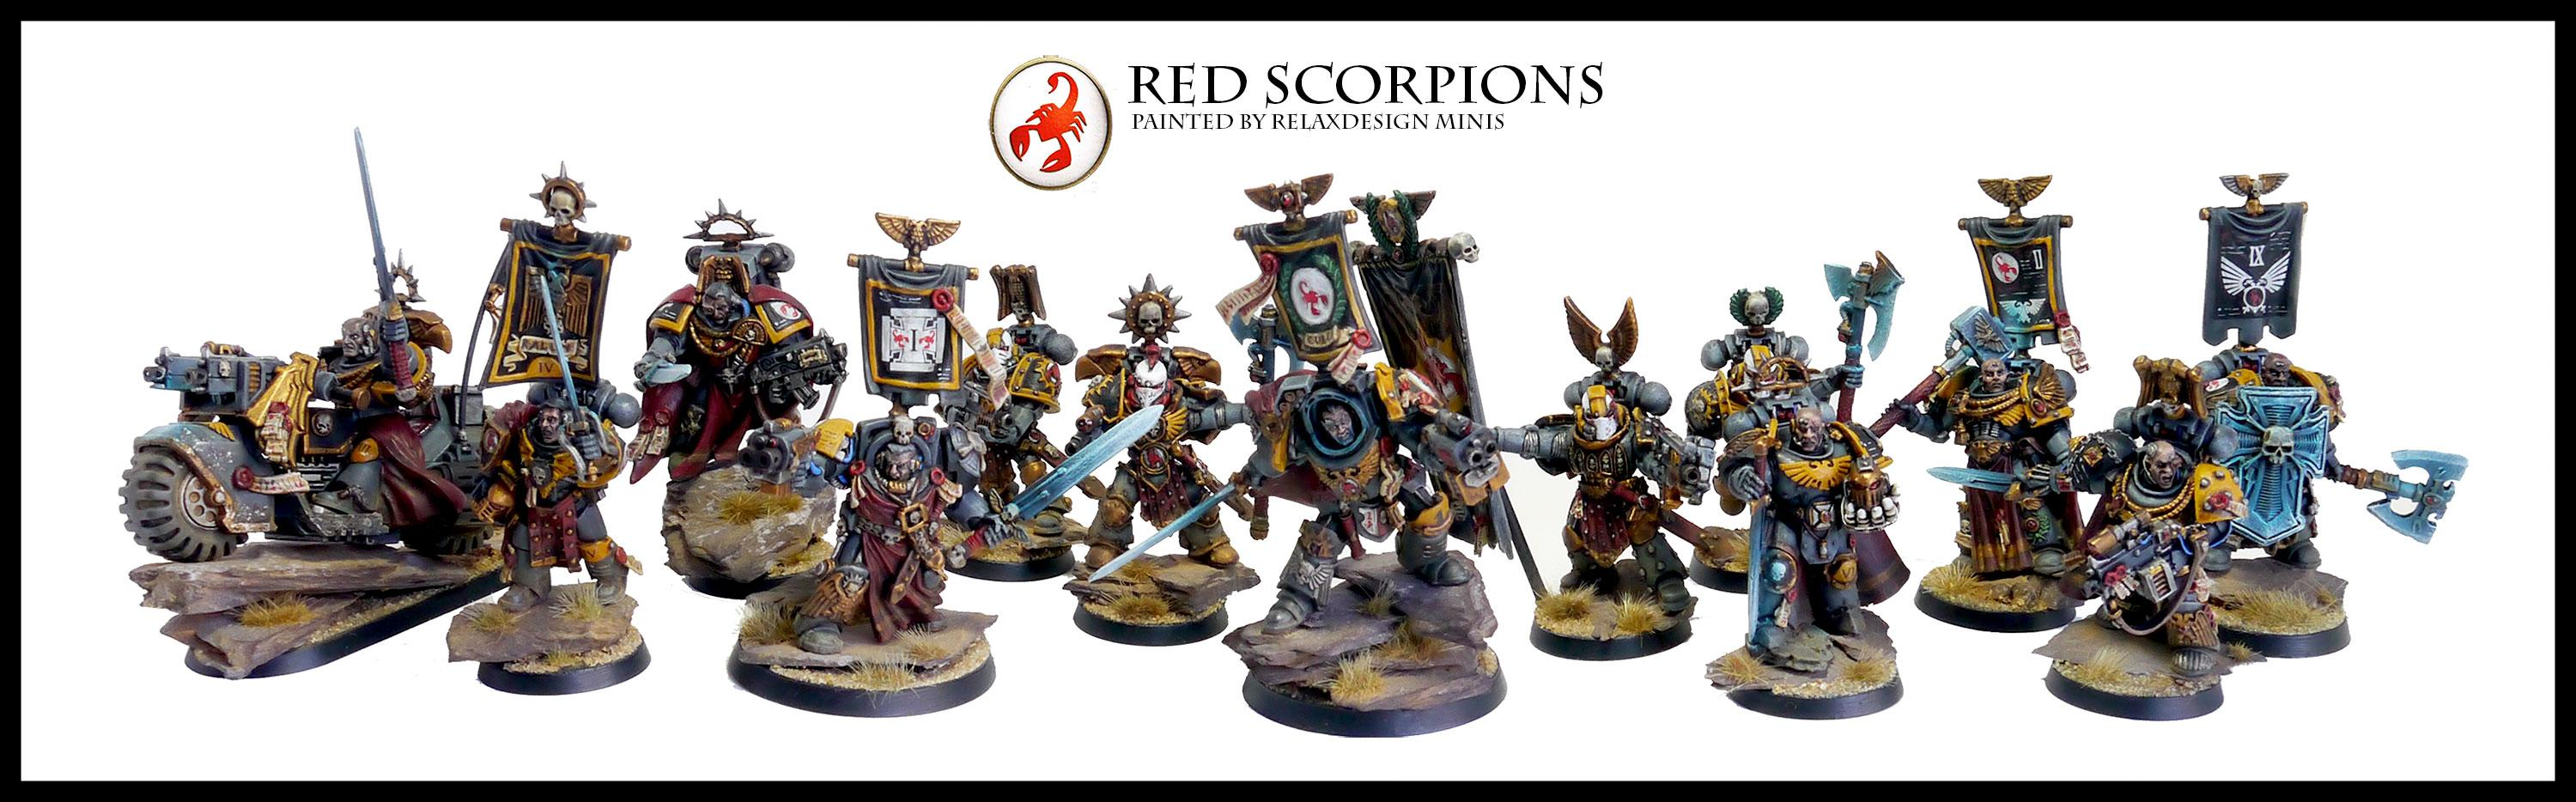 Captain, Command Squad, Commander, Forge World, Games Workshop, Headquarters, Honour Guard, Red Scorpions, Space Marines, Warhammer 40,000, Warhammer Fantasy